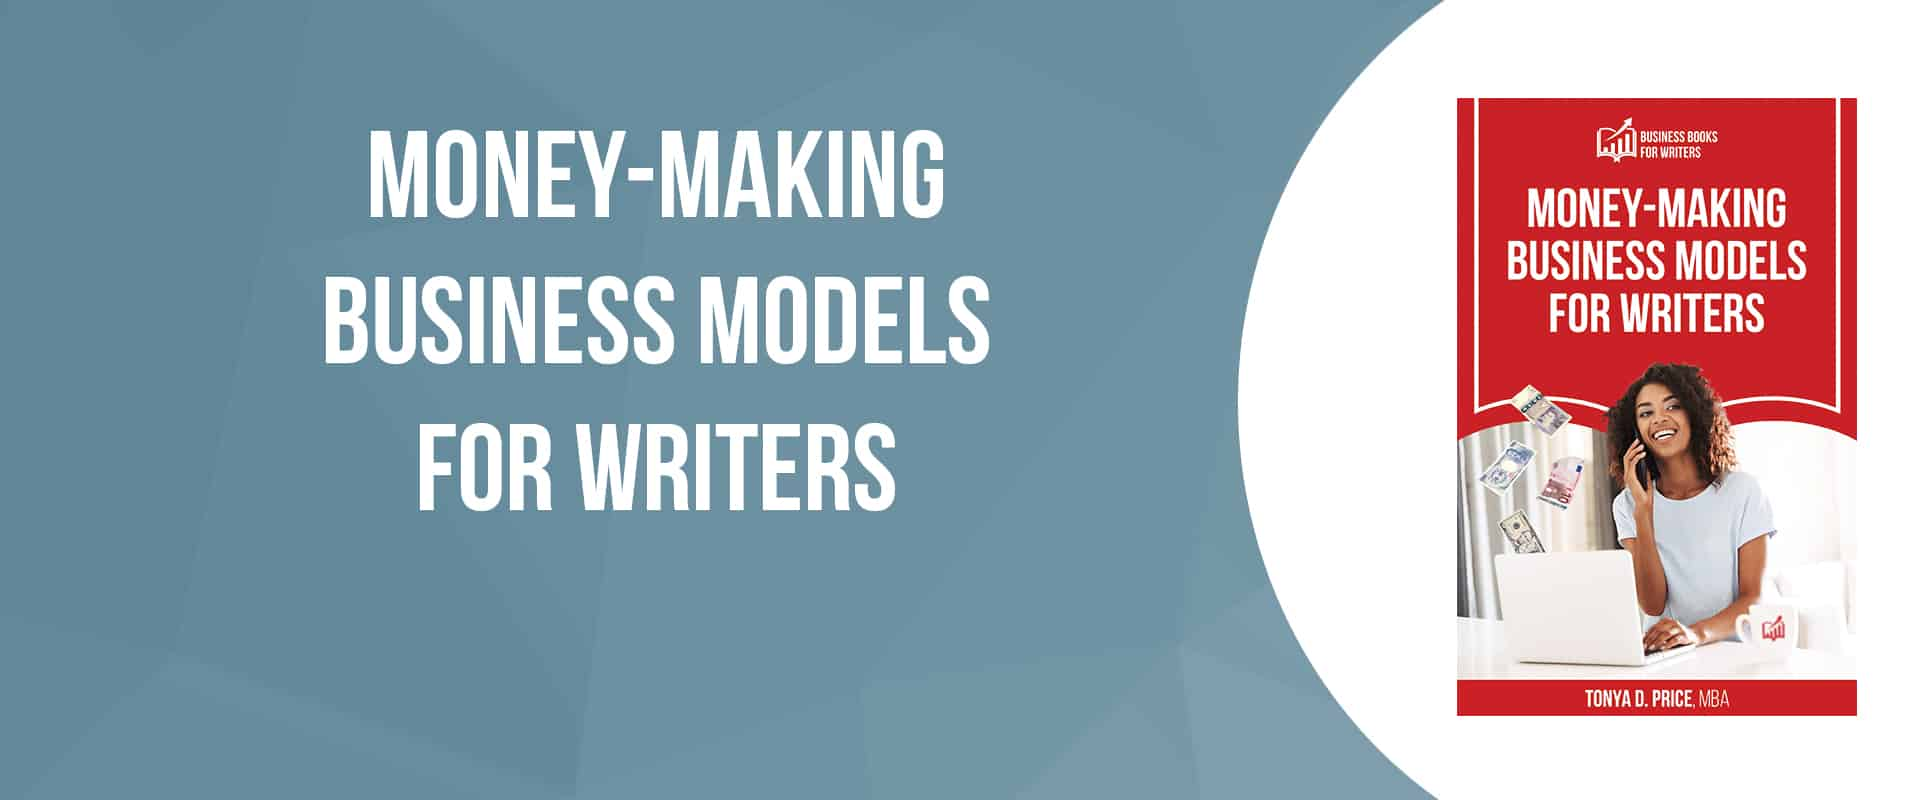 Money-Making Business Models for Writers - feature image